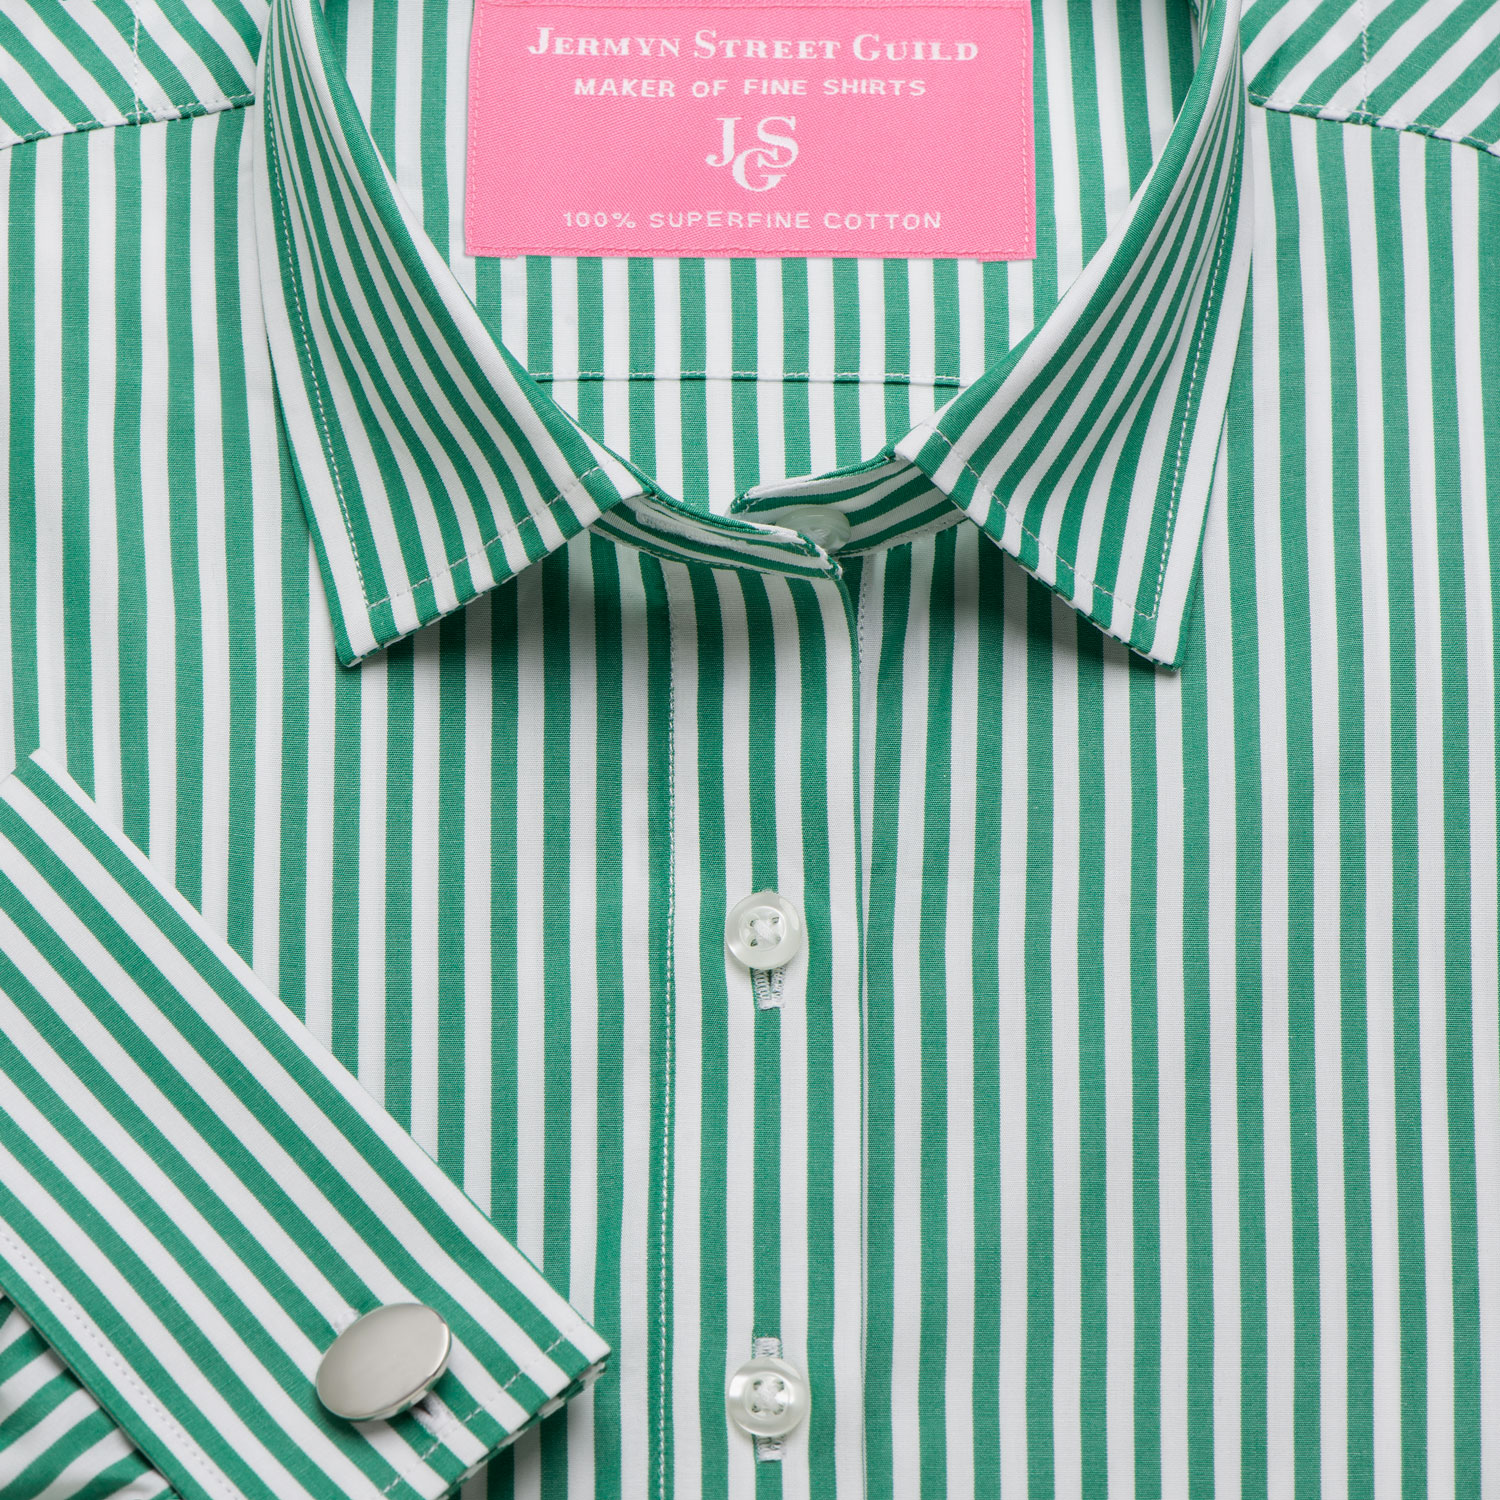 994d7fc657 Green Bengal Stripe Poplin Women's Shirt Available in Six Styles